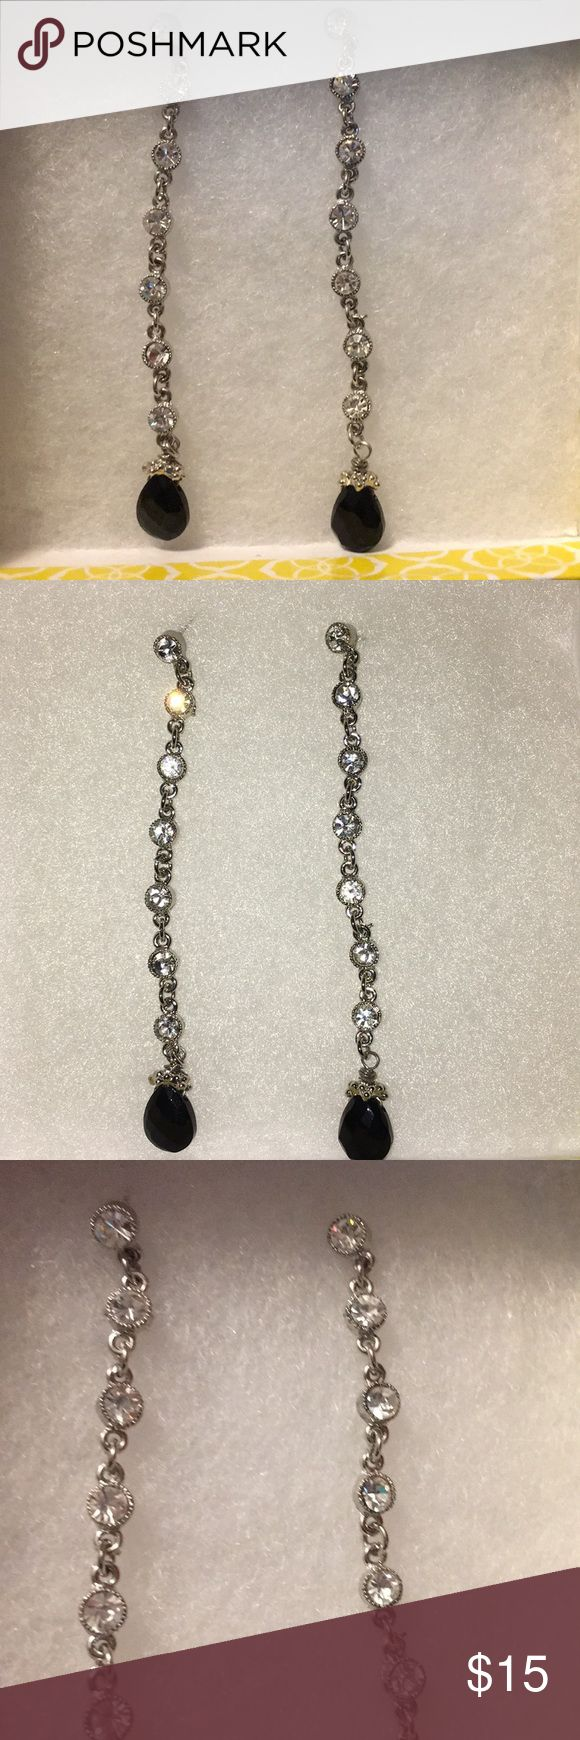 "Special occasion dangly earrings New without tags dangly fashion earrings with rhinestones and Black Stone. These are beautiful and great for evening wear or just to make your outfit more elegant. They were a gift many years ago and just never worn. They measure about 3.5""' long Jewelry Earrings"